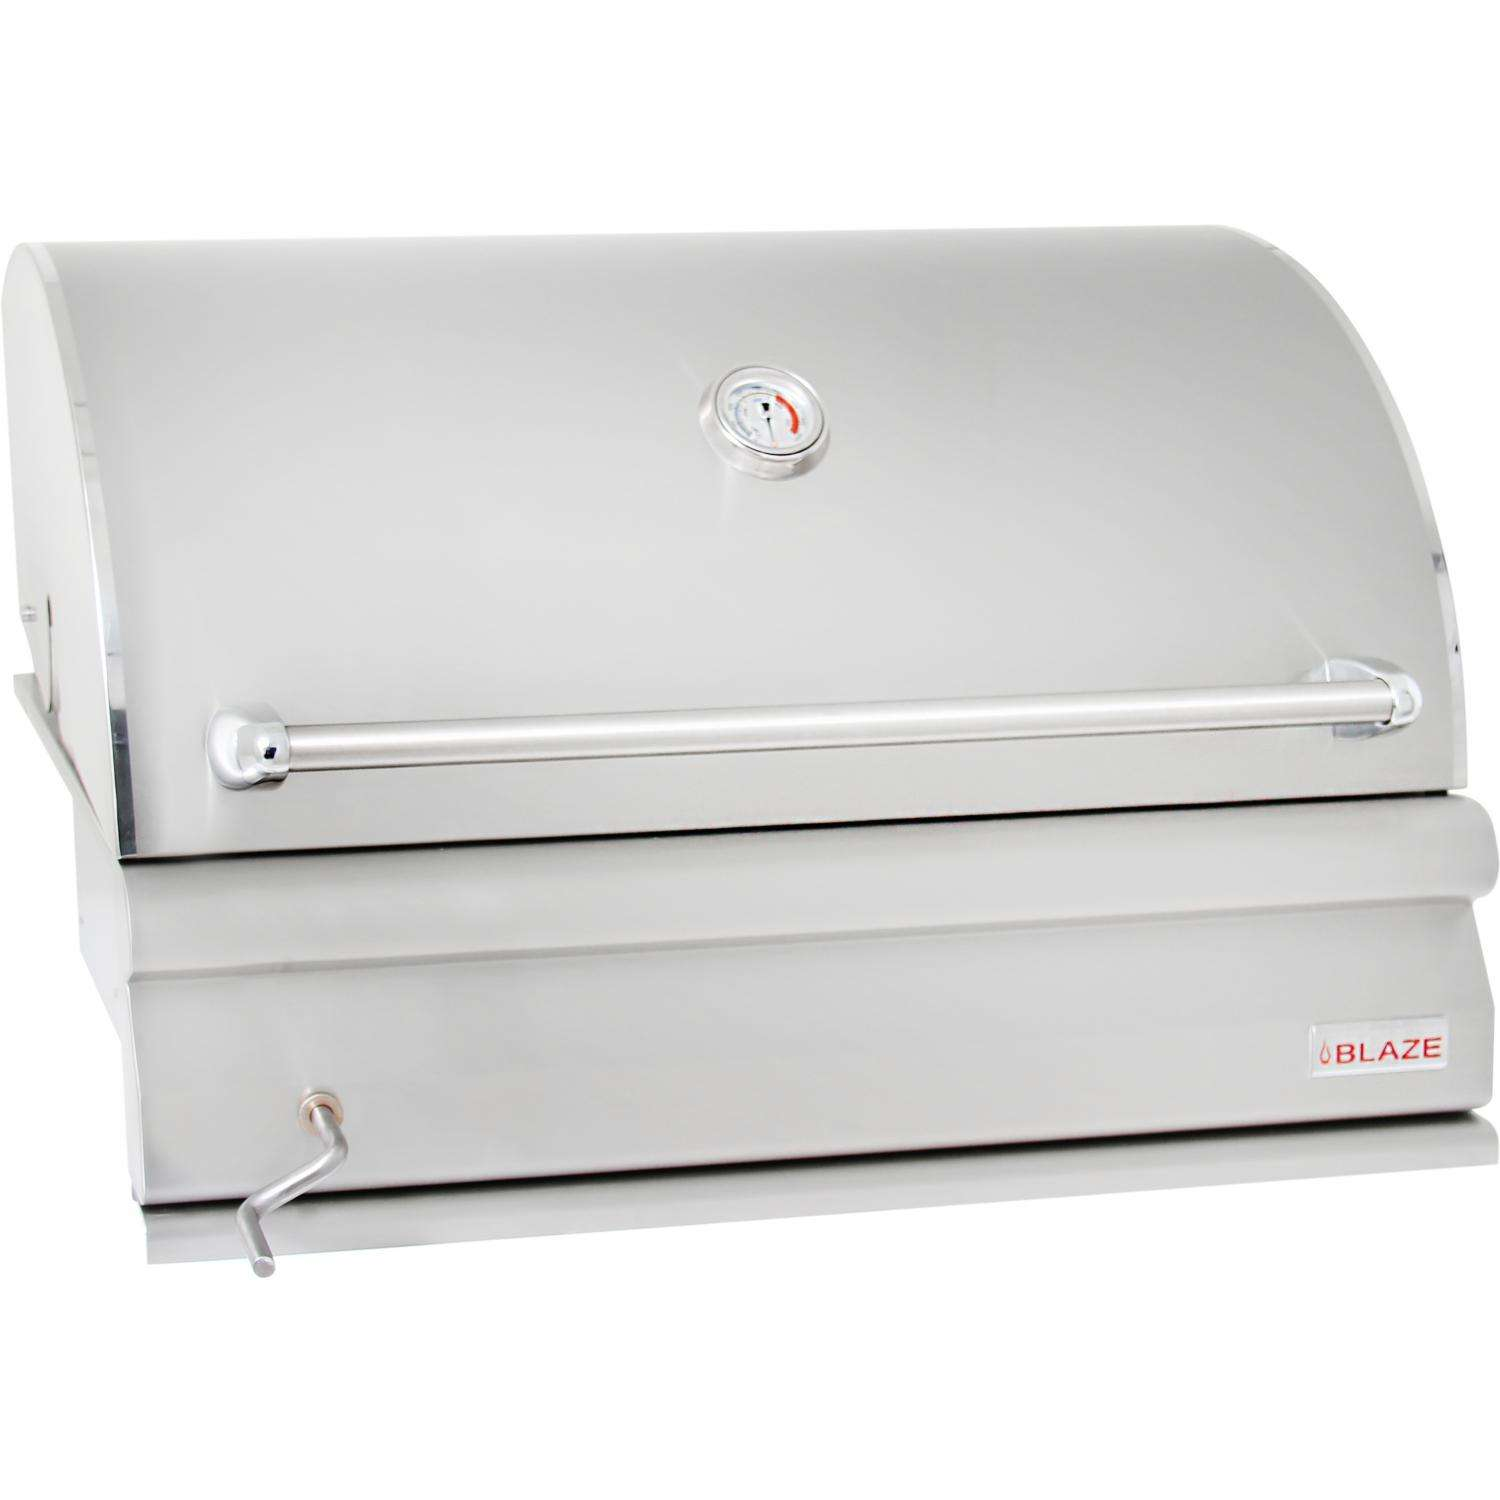 Blaze 32 Inch Charcoal Grill Insert Bbq Amp Grilling